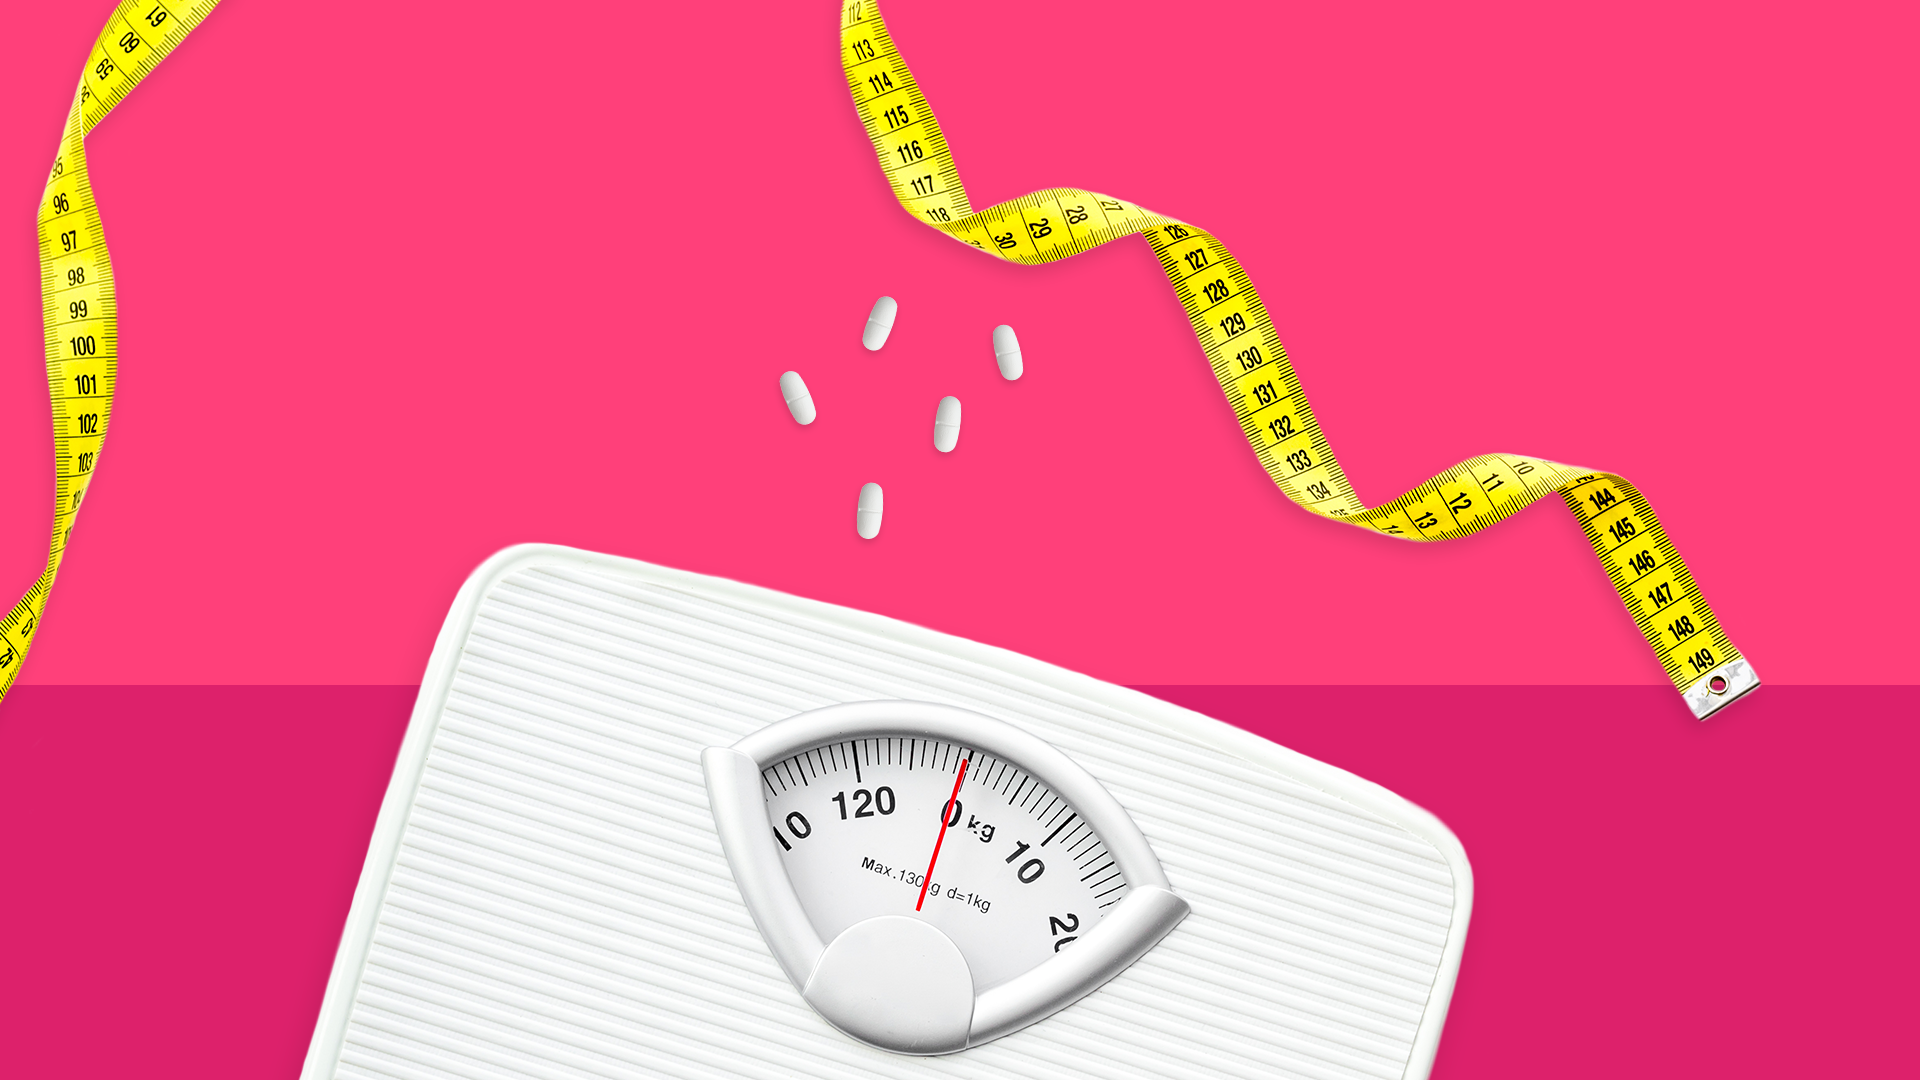 Is phentermine for weight loss safe?